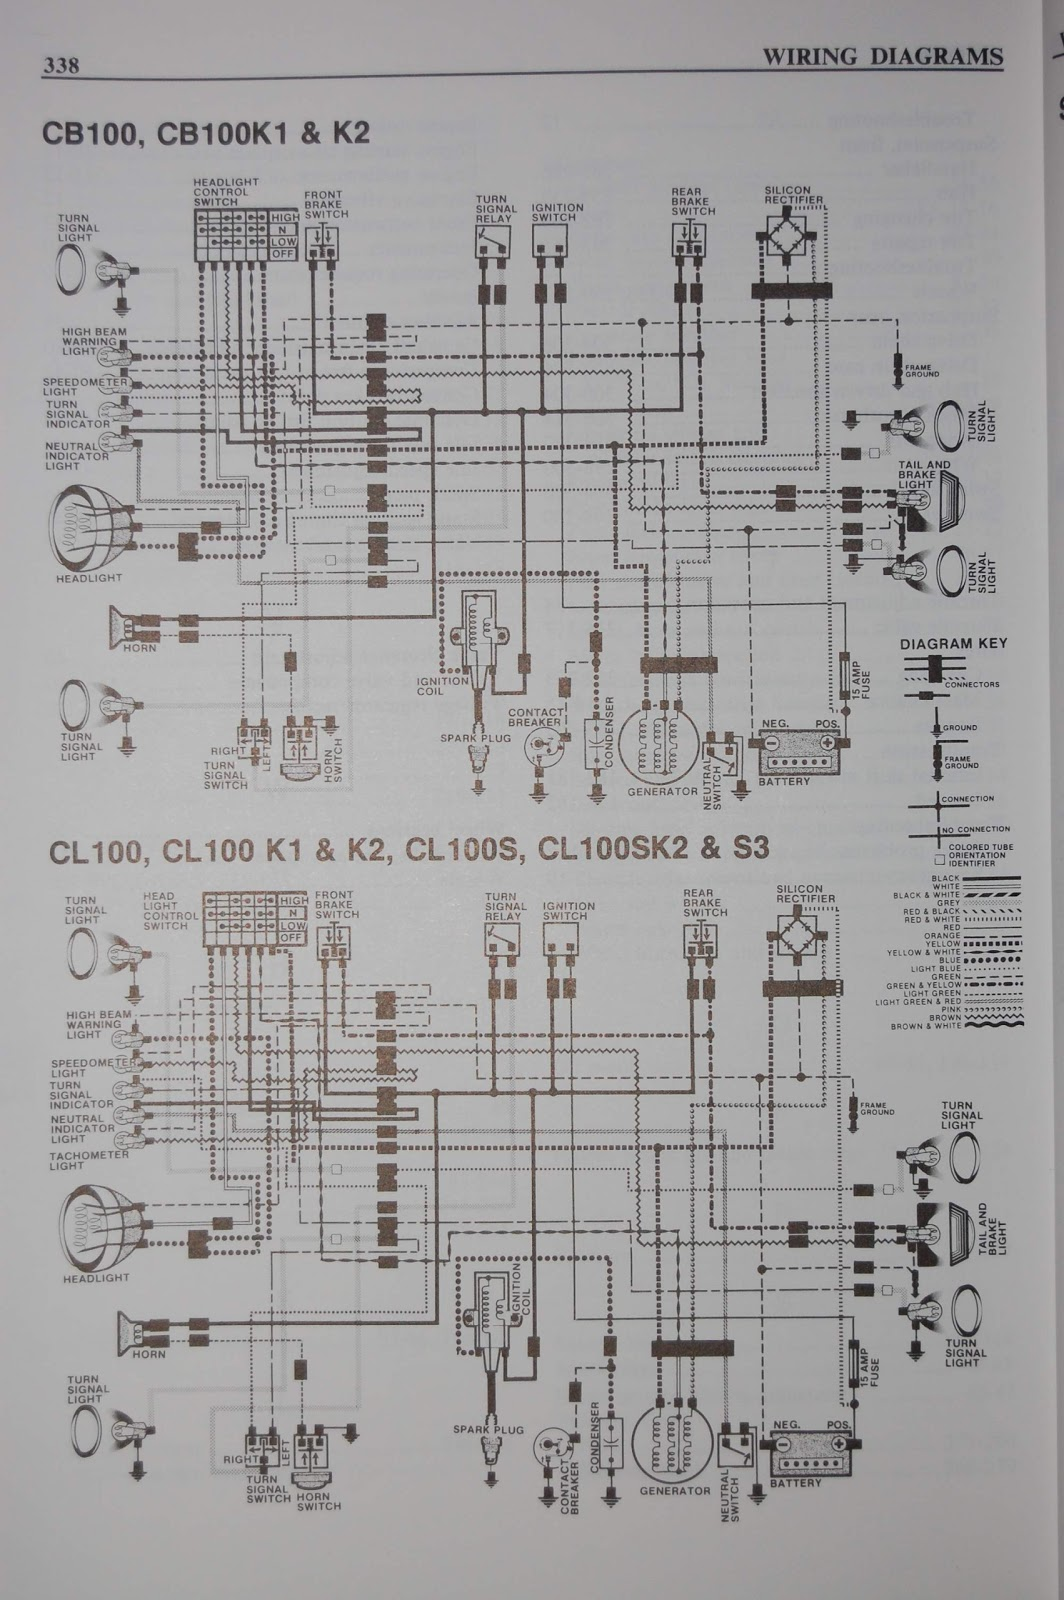 wiring diagram pollak 32237 simple wiring diagram schemacb 750 engine diagram wiring library becker wiring diagram [ 1064 x 1600 Pixel ]